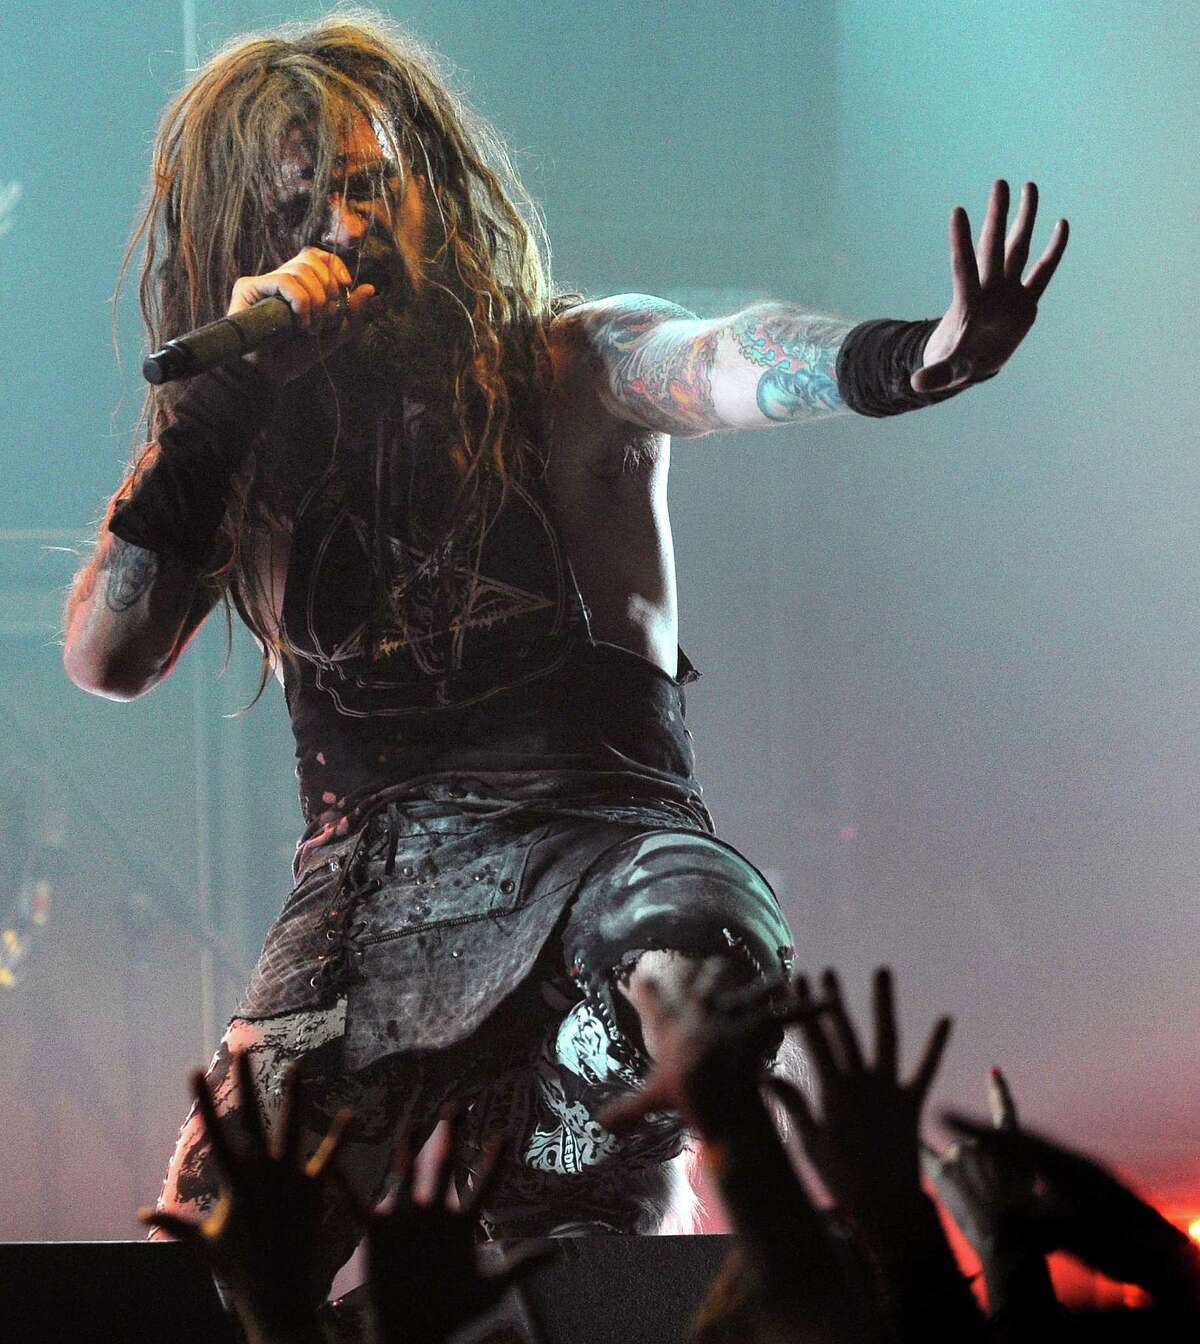 FILE-- This April 8, 2010 file photograph shows singer Rob Zombie as he performs during the second annual Revolver Golden Gods Awards in Los Angeles. The town of Woodbury, Conn. has taken steps to reduce noise following complaints from Zombie and his wife about a skate park near their home in the small Litchfield County community. (AP Photo/Chris Pizzello) ORG XMIT: BX403